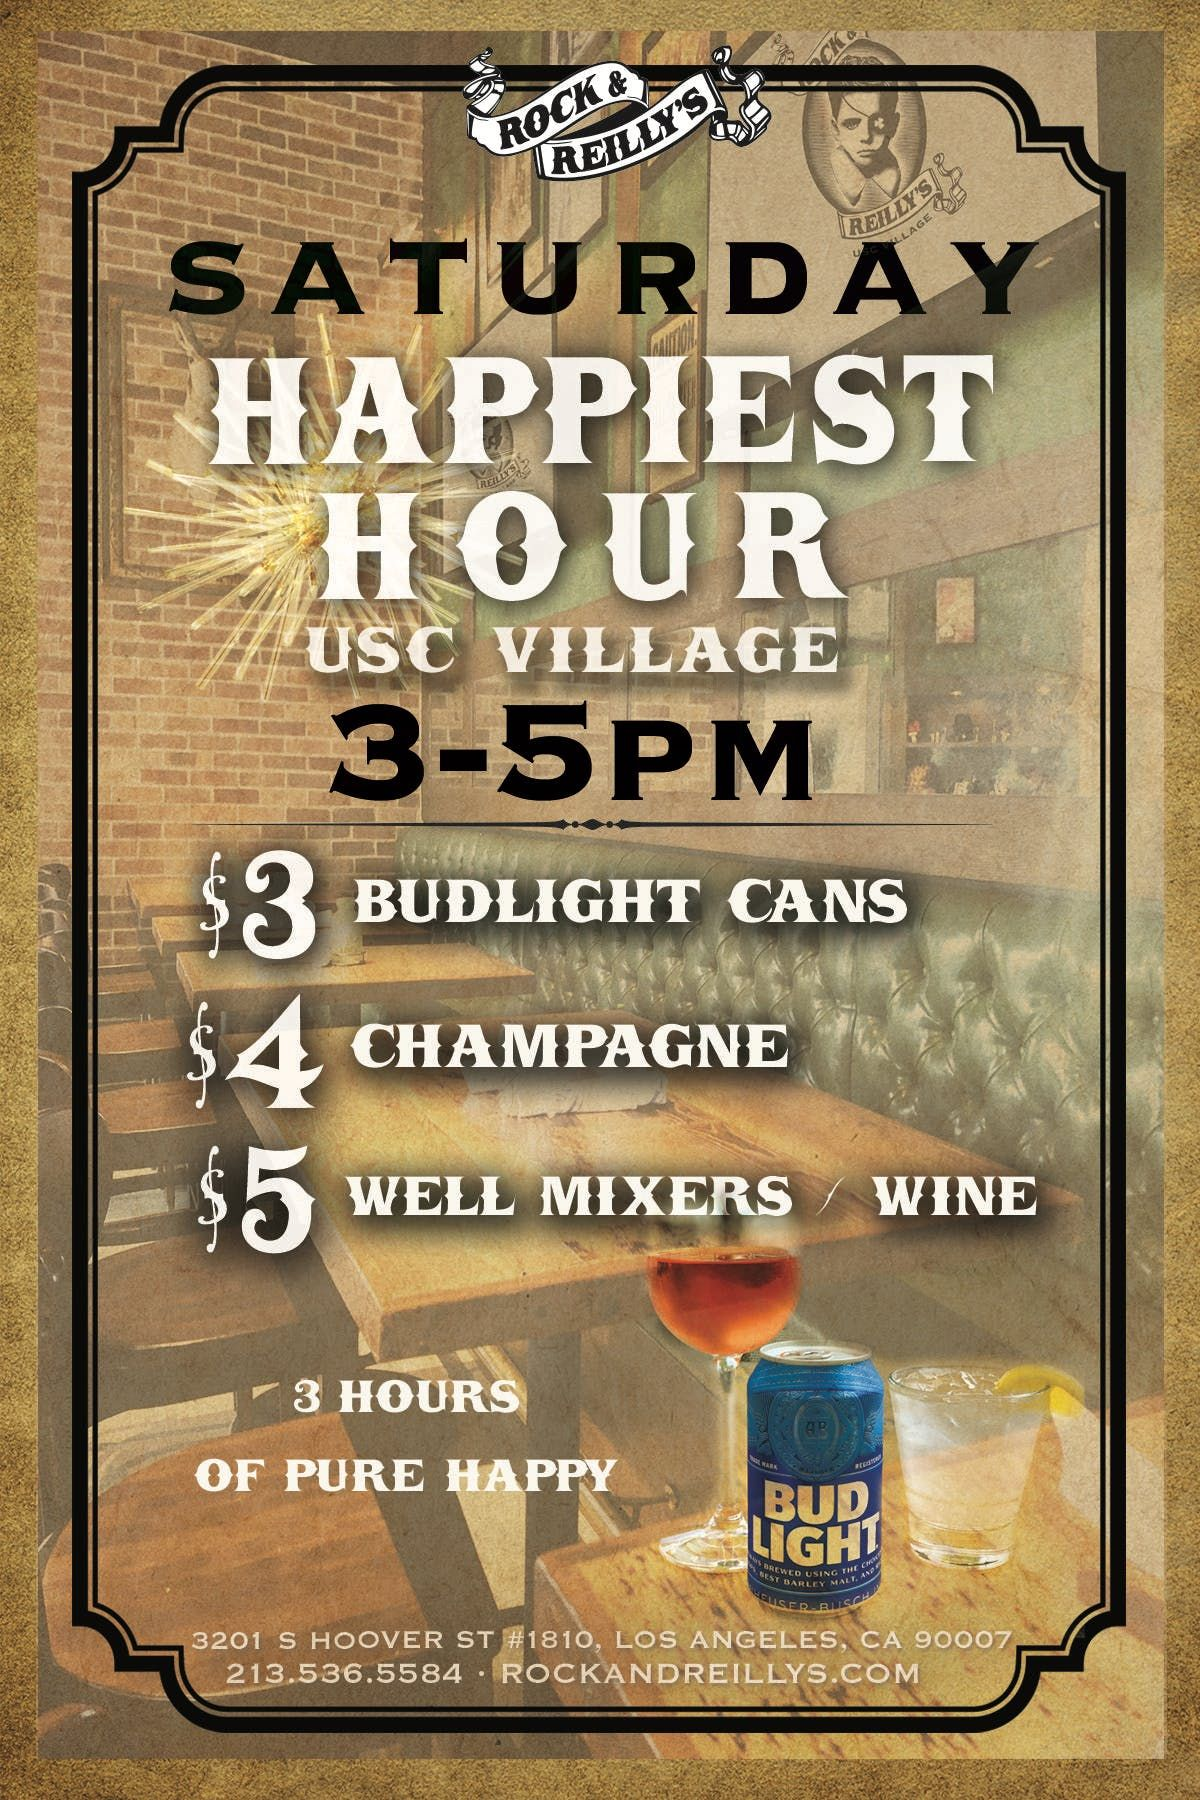 Rock & Reillys USC Happiest Hour  - 345 Drinks from 3-5pm